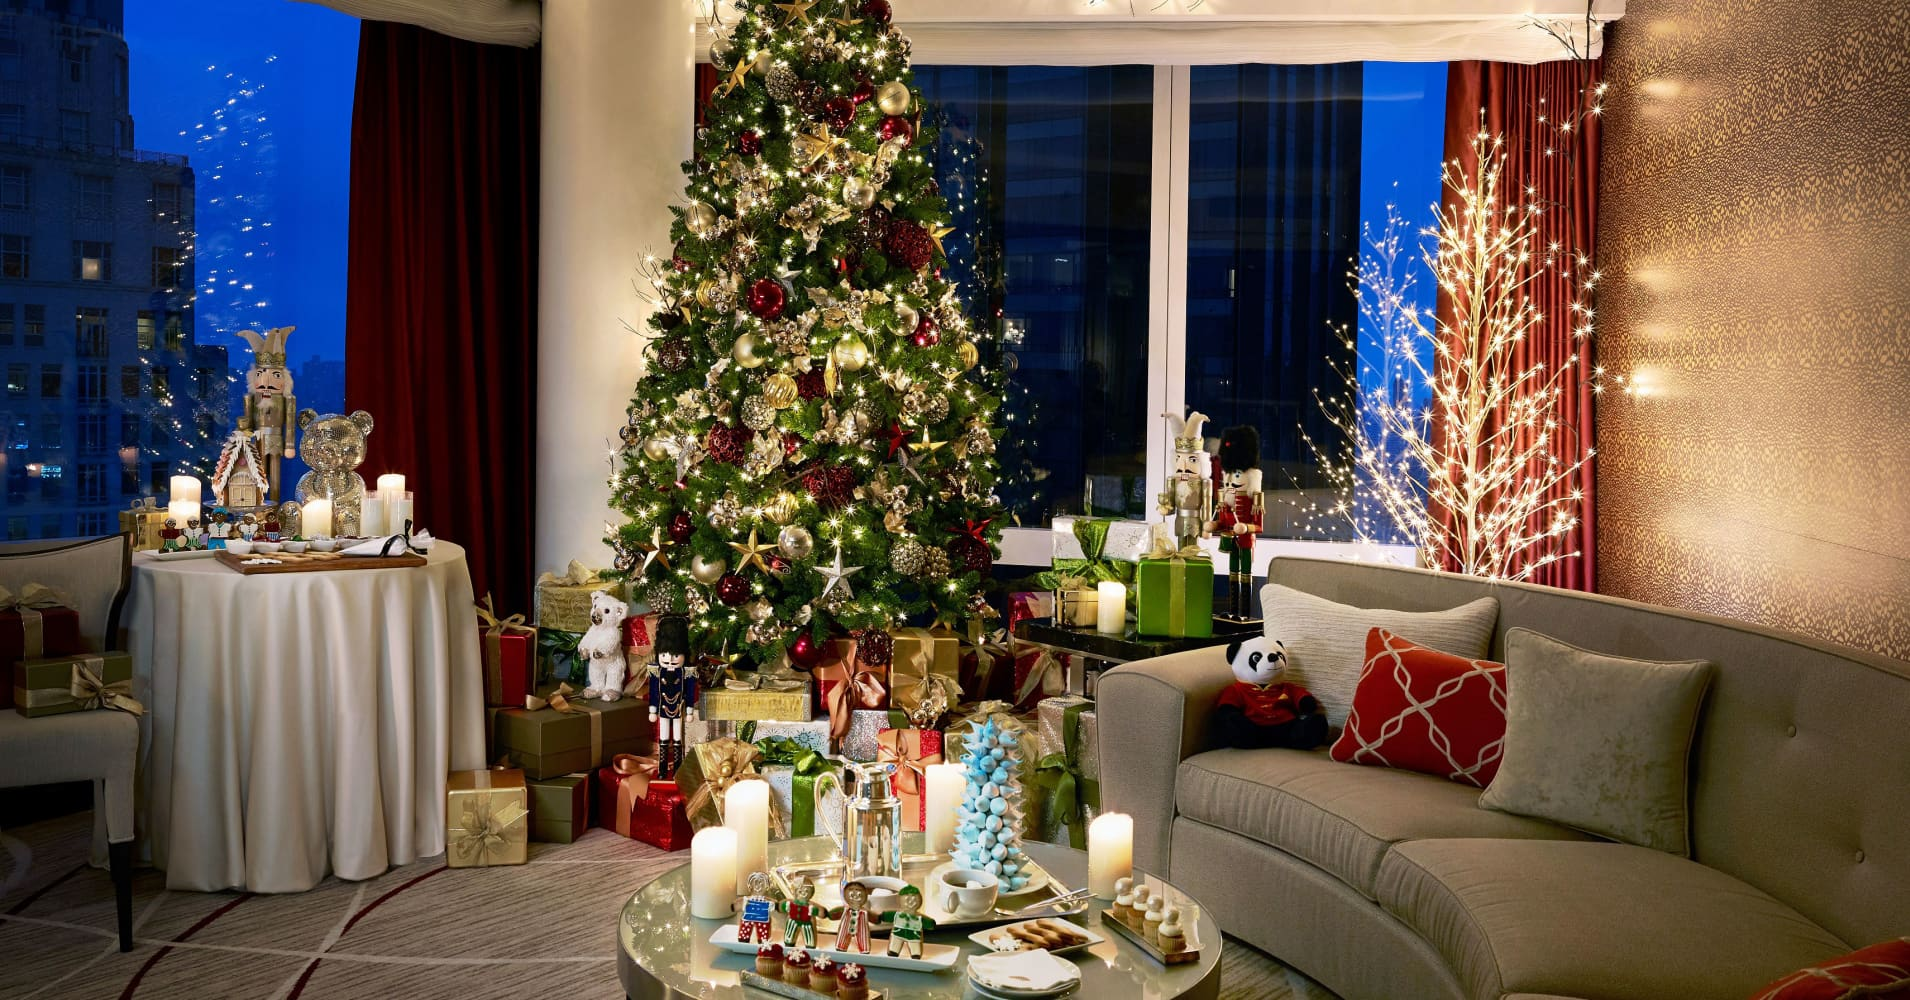 Christmas vacations in NYC, Ft. Lauderdale from quaint to ultra luxury